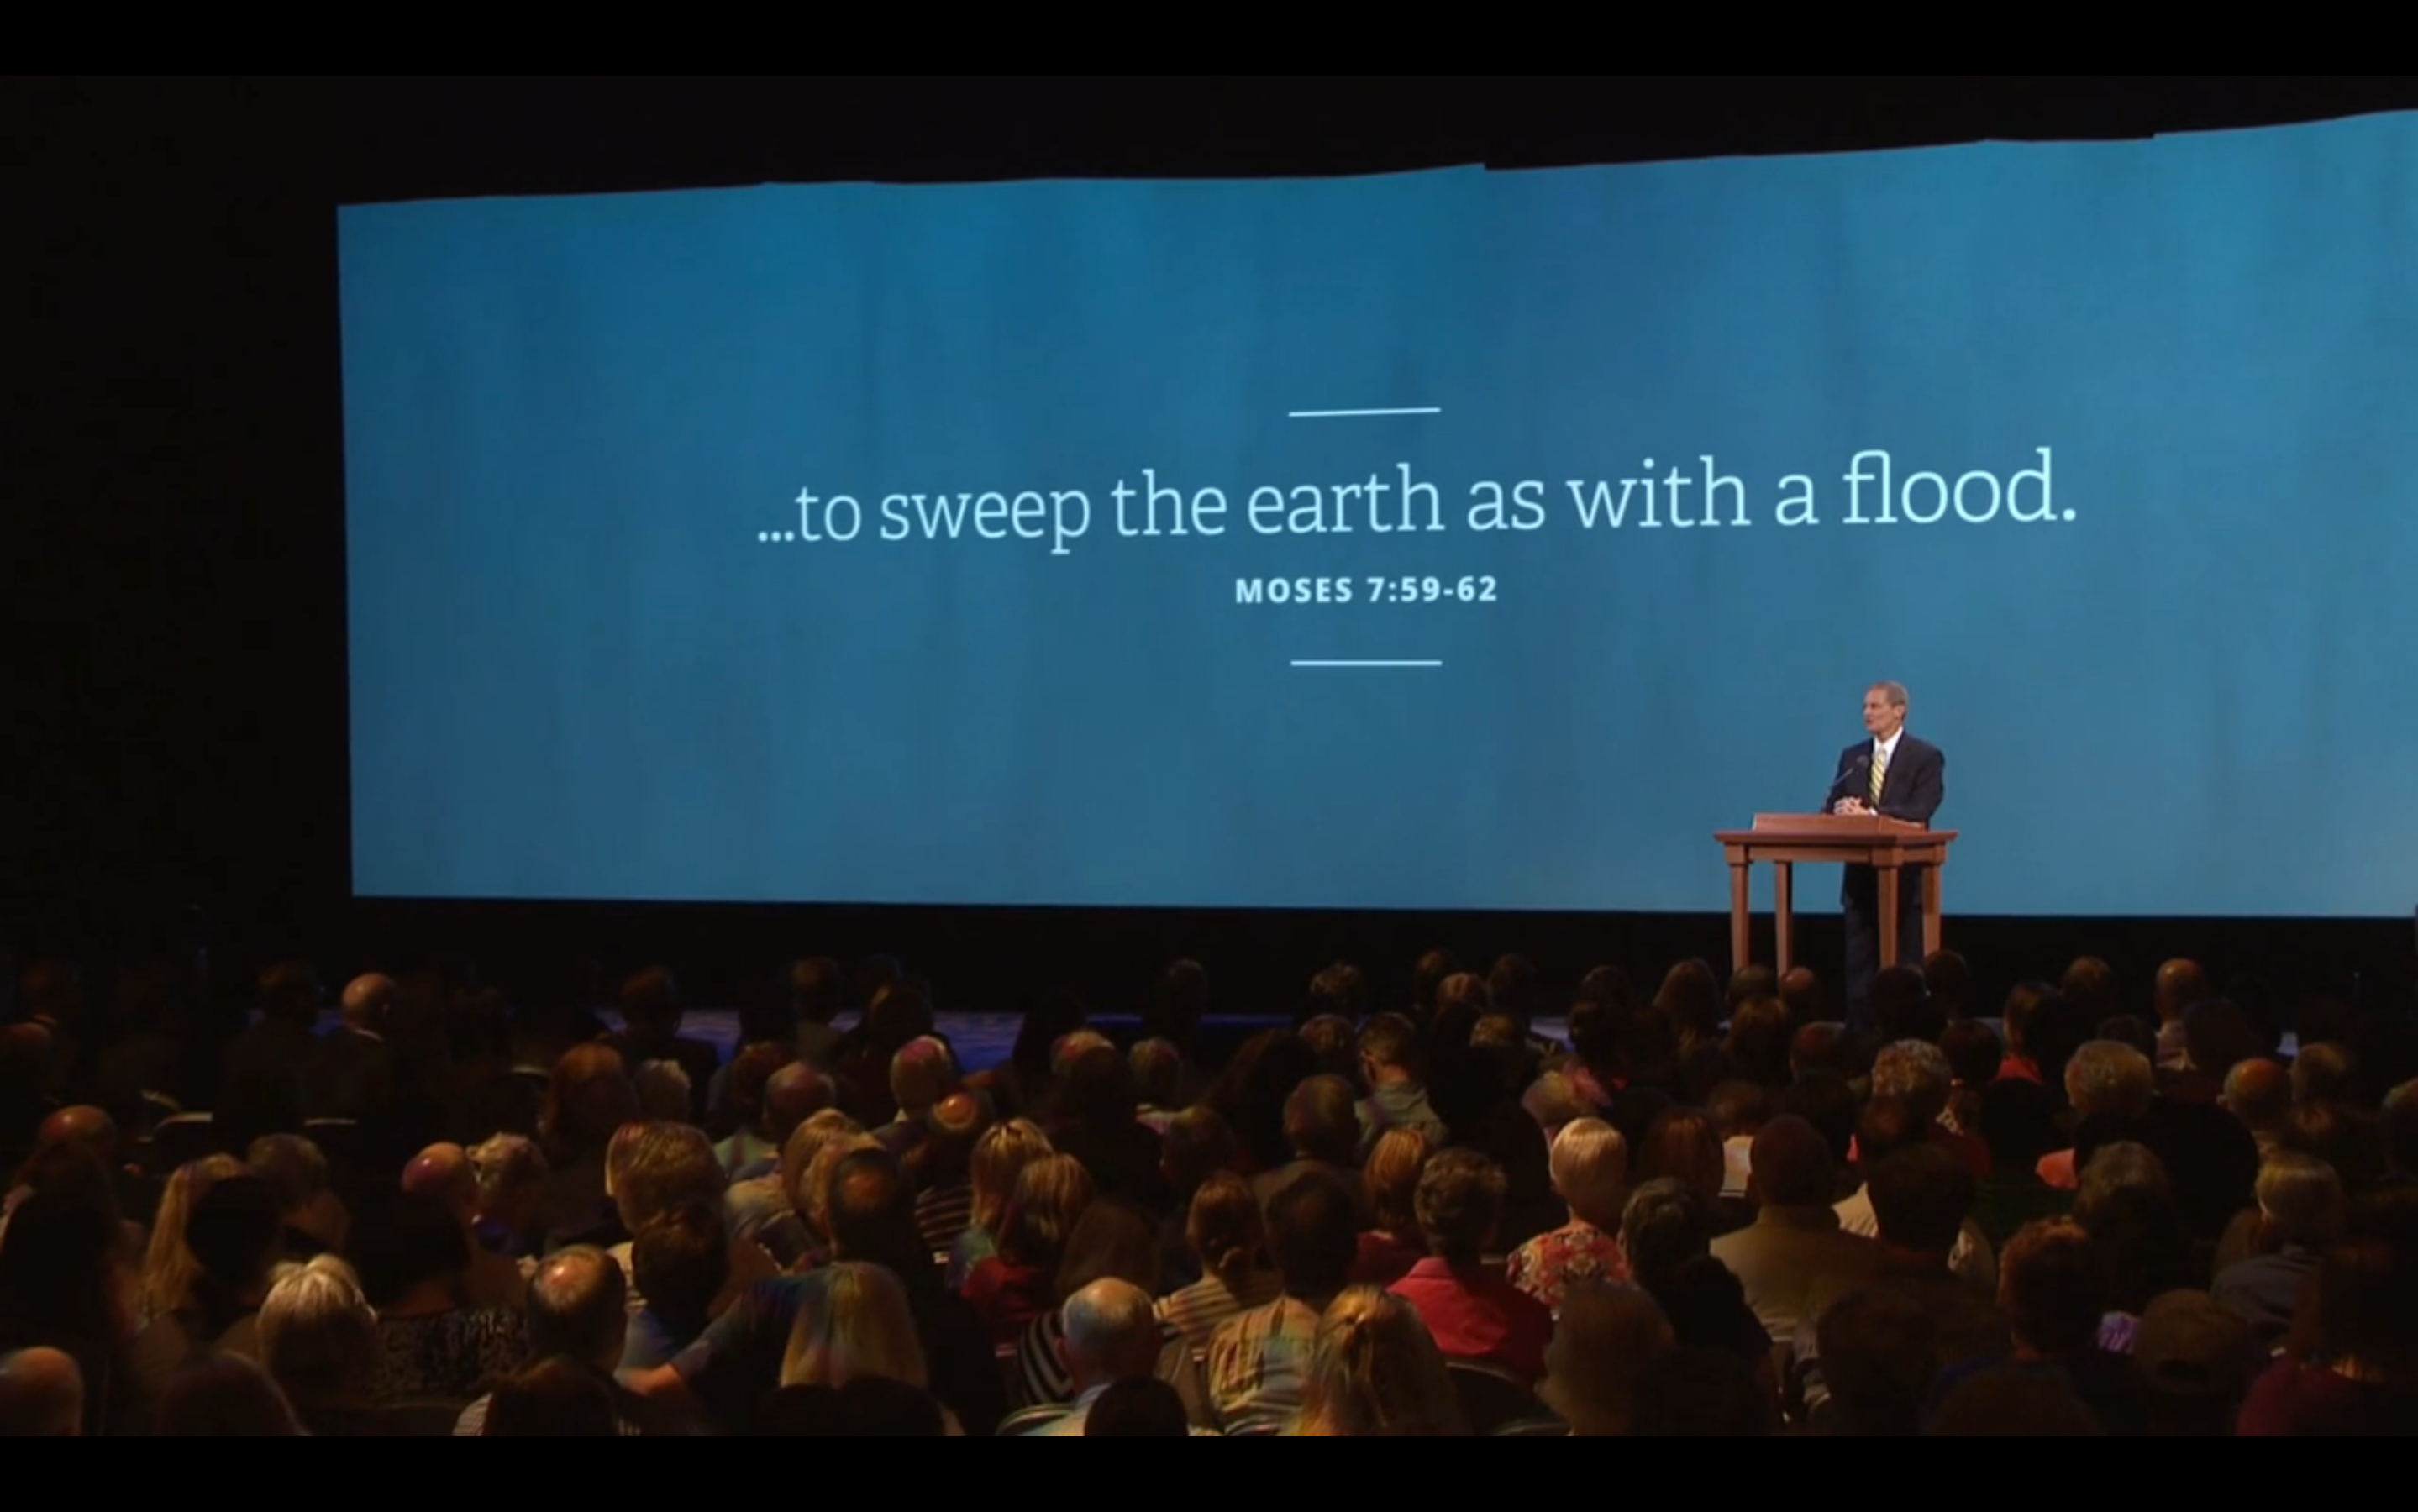 To Sweep the Earth as with a Flood presentation overview